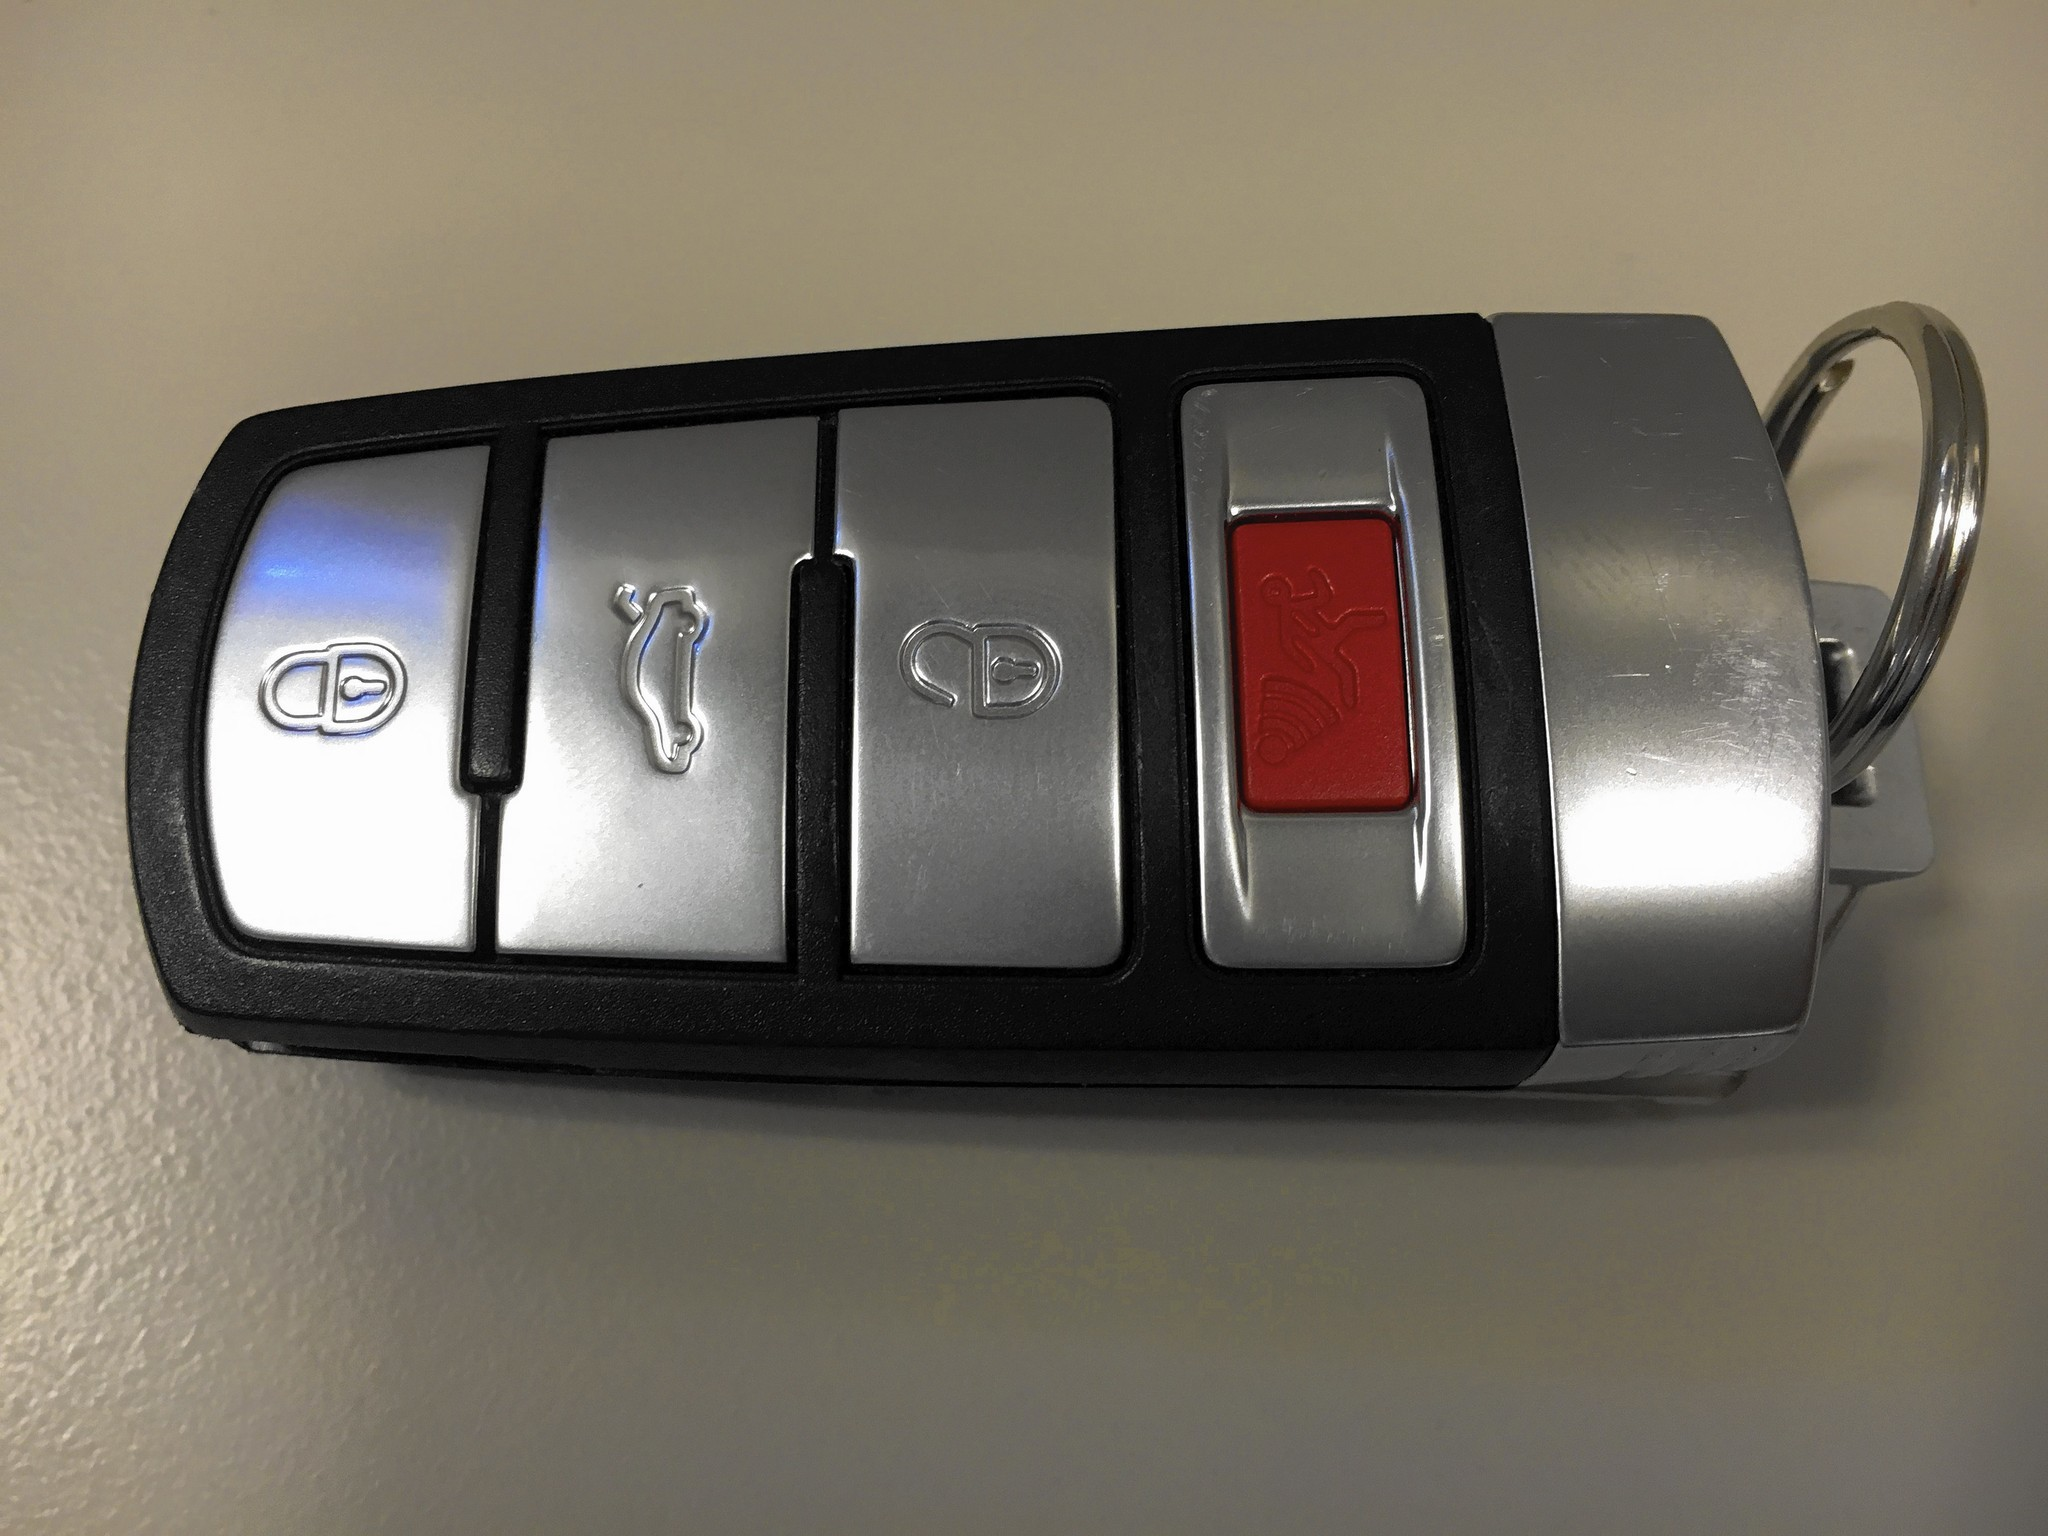 Leaving Key Fob In Car Can Drain Battery Chicago Tribune